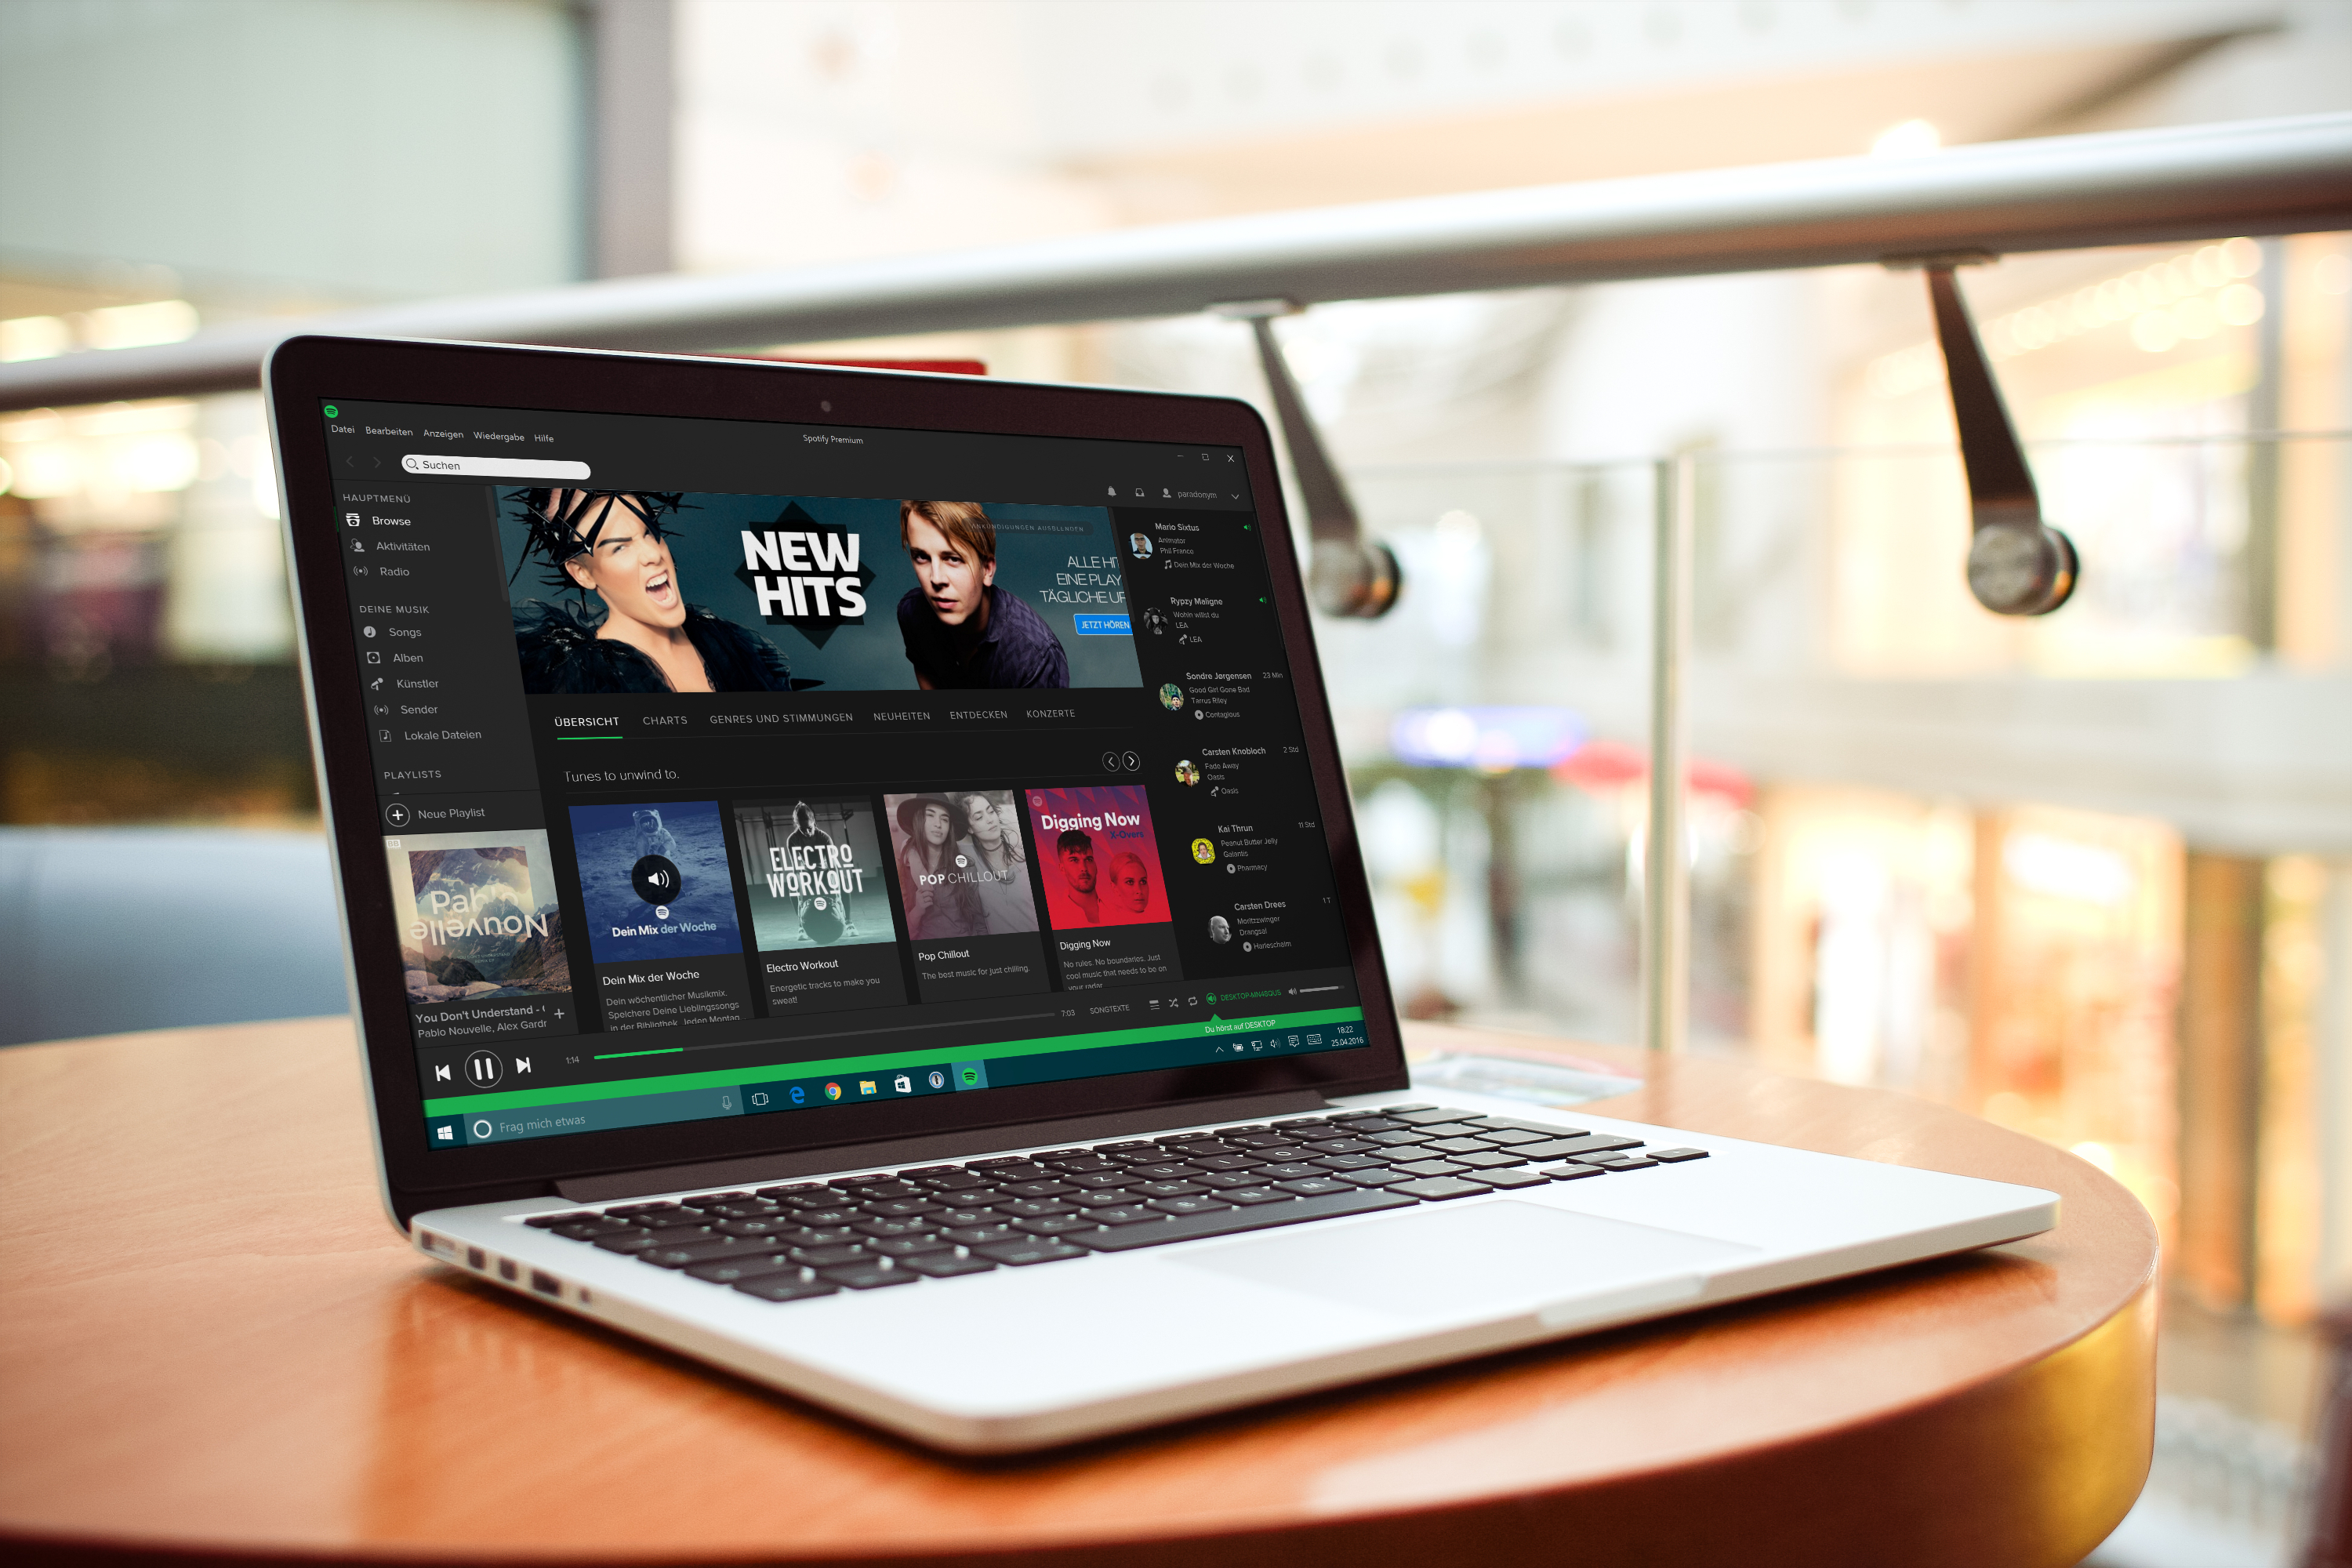 Spotify on a Laptop